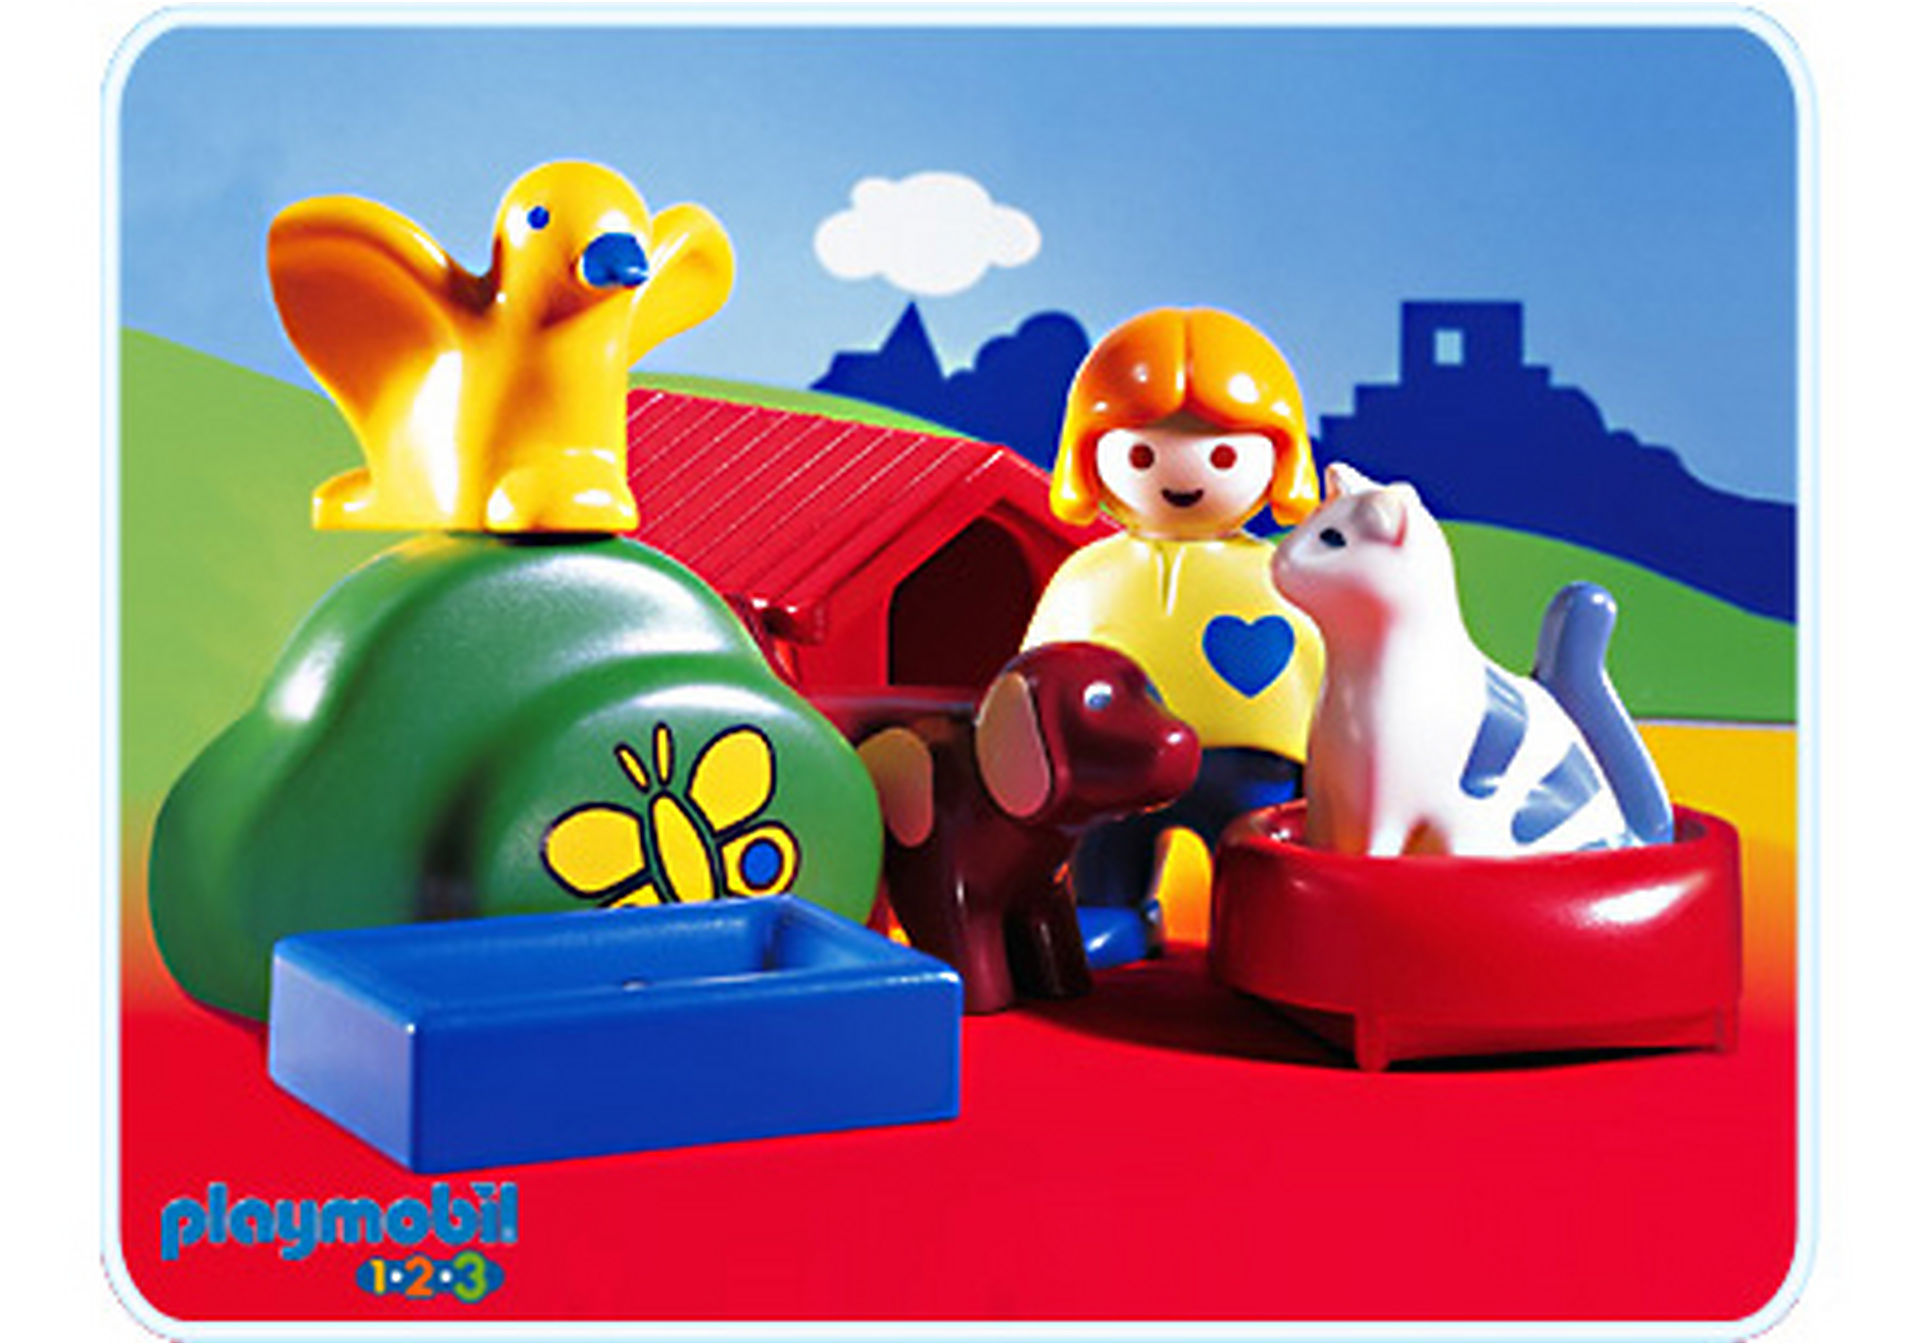 http://media.playmobil.com/i/playmobil/6551-A_product_detail/Haustiere